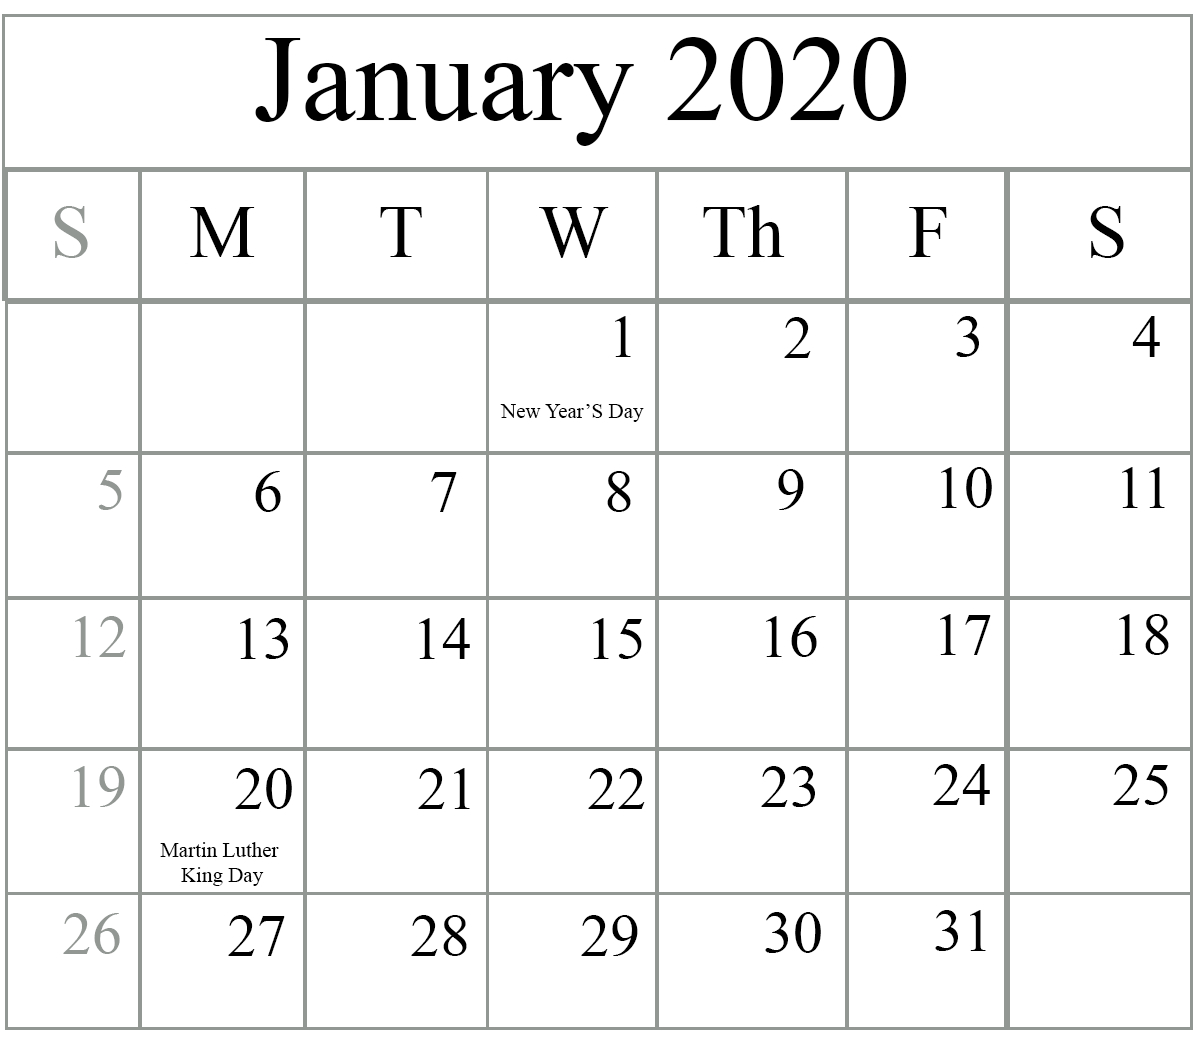 January 2020 Calendar With Holiday | Printable March for 2020 Calendar With Holidays Printable Free